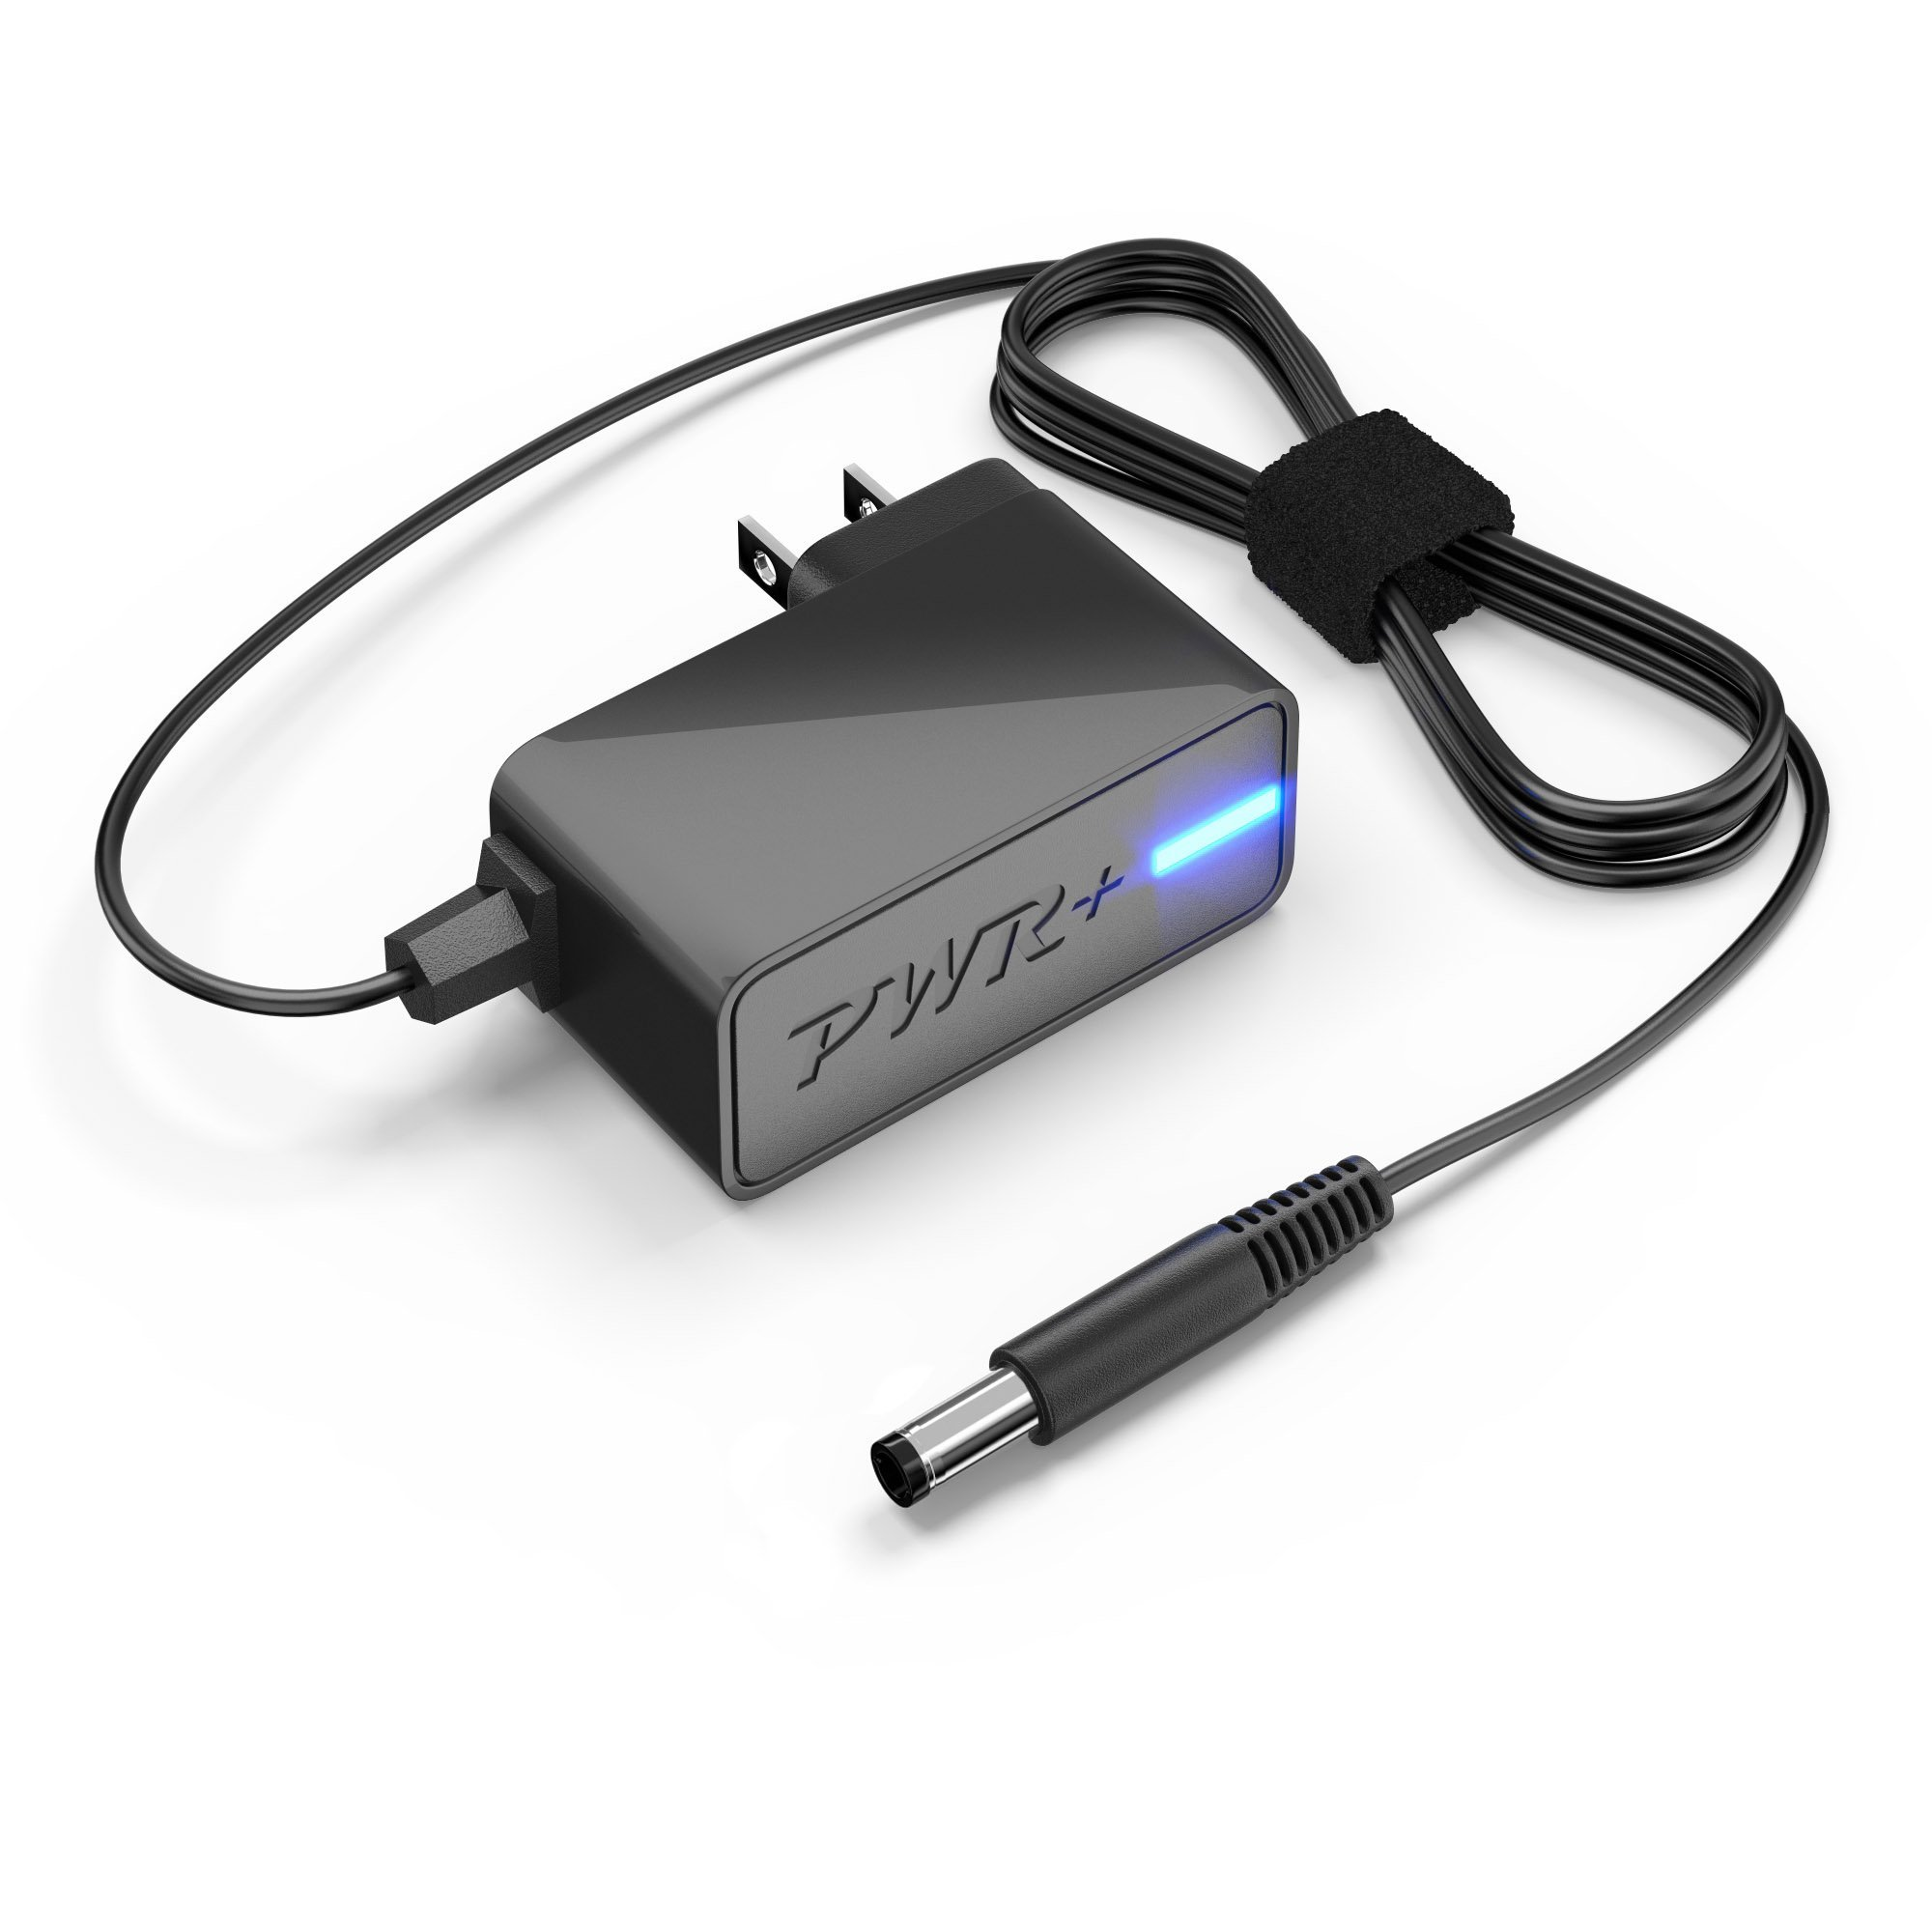 Pwr 12V AC Power Adapter for Roku-Ultra HD 4660 PW11 Streaming Media Player Cord : UL Listed Extra Long 6.5 Ft